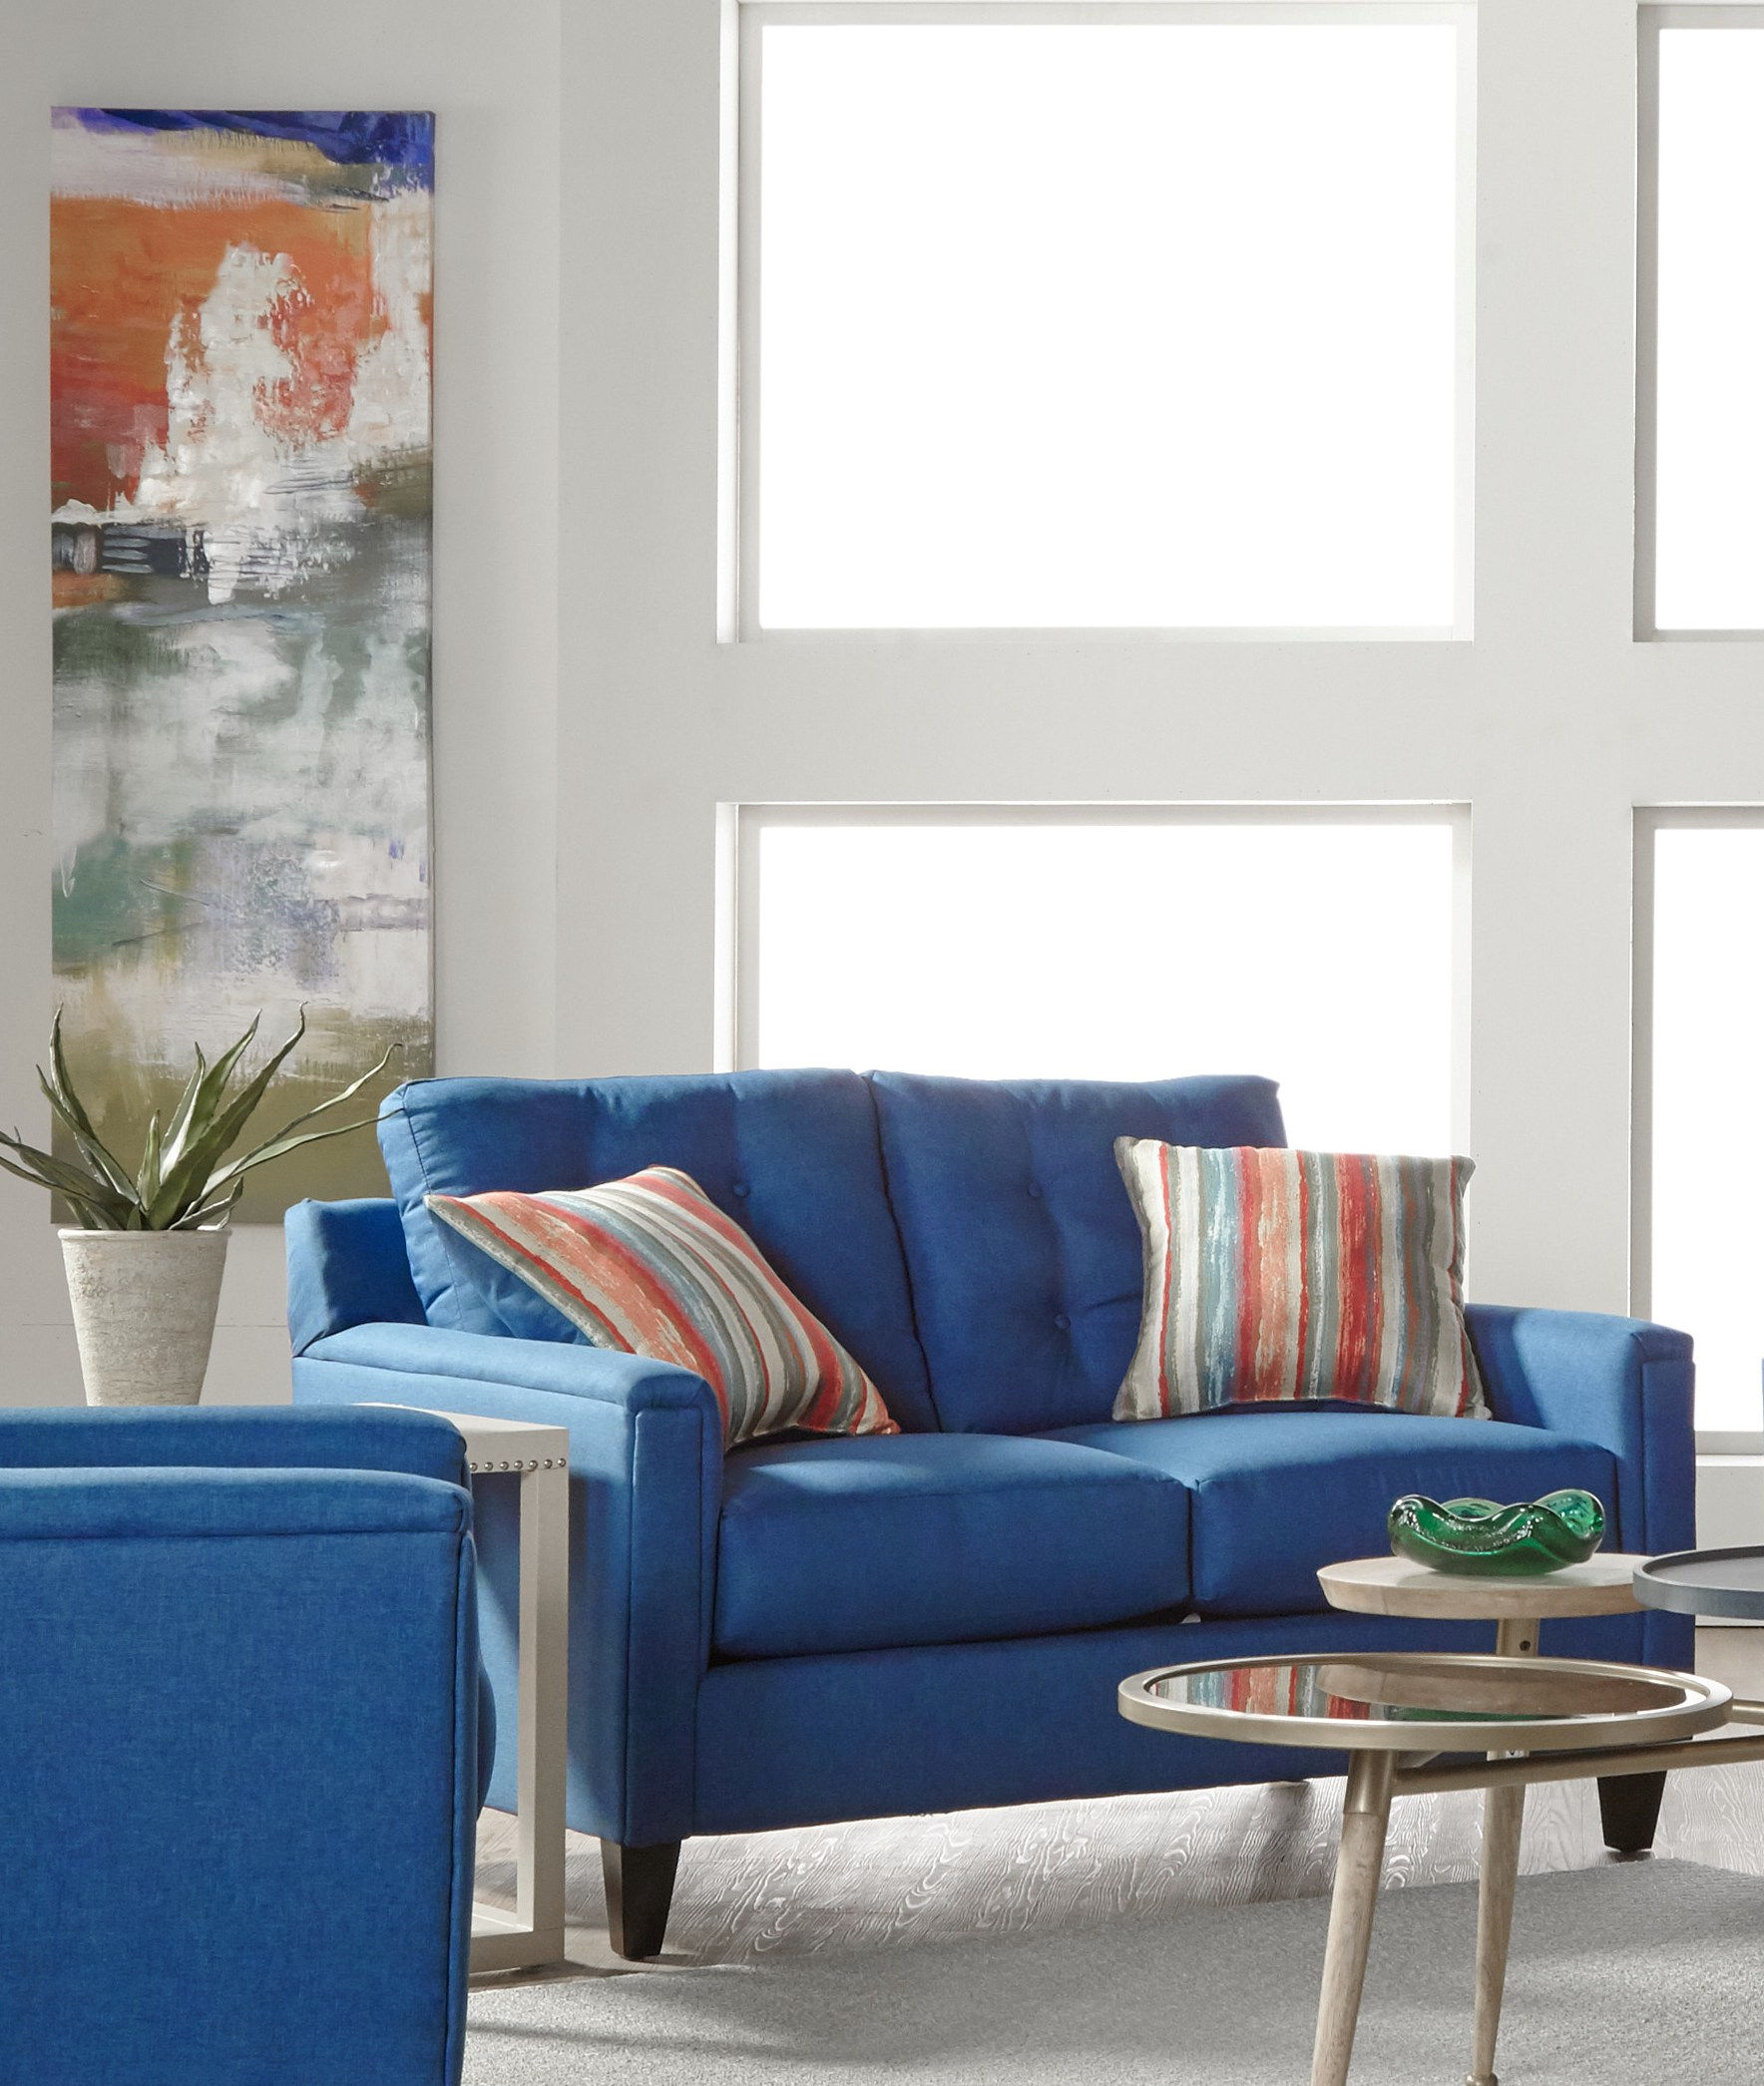 Tremendous Serta 6800 Series Jitterbug Denim Loveseat The Classy Home Gmtry Best Dining Table And Chair Ideas Images Gmtryco